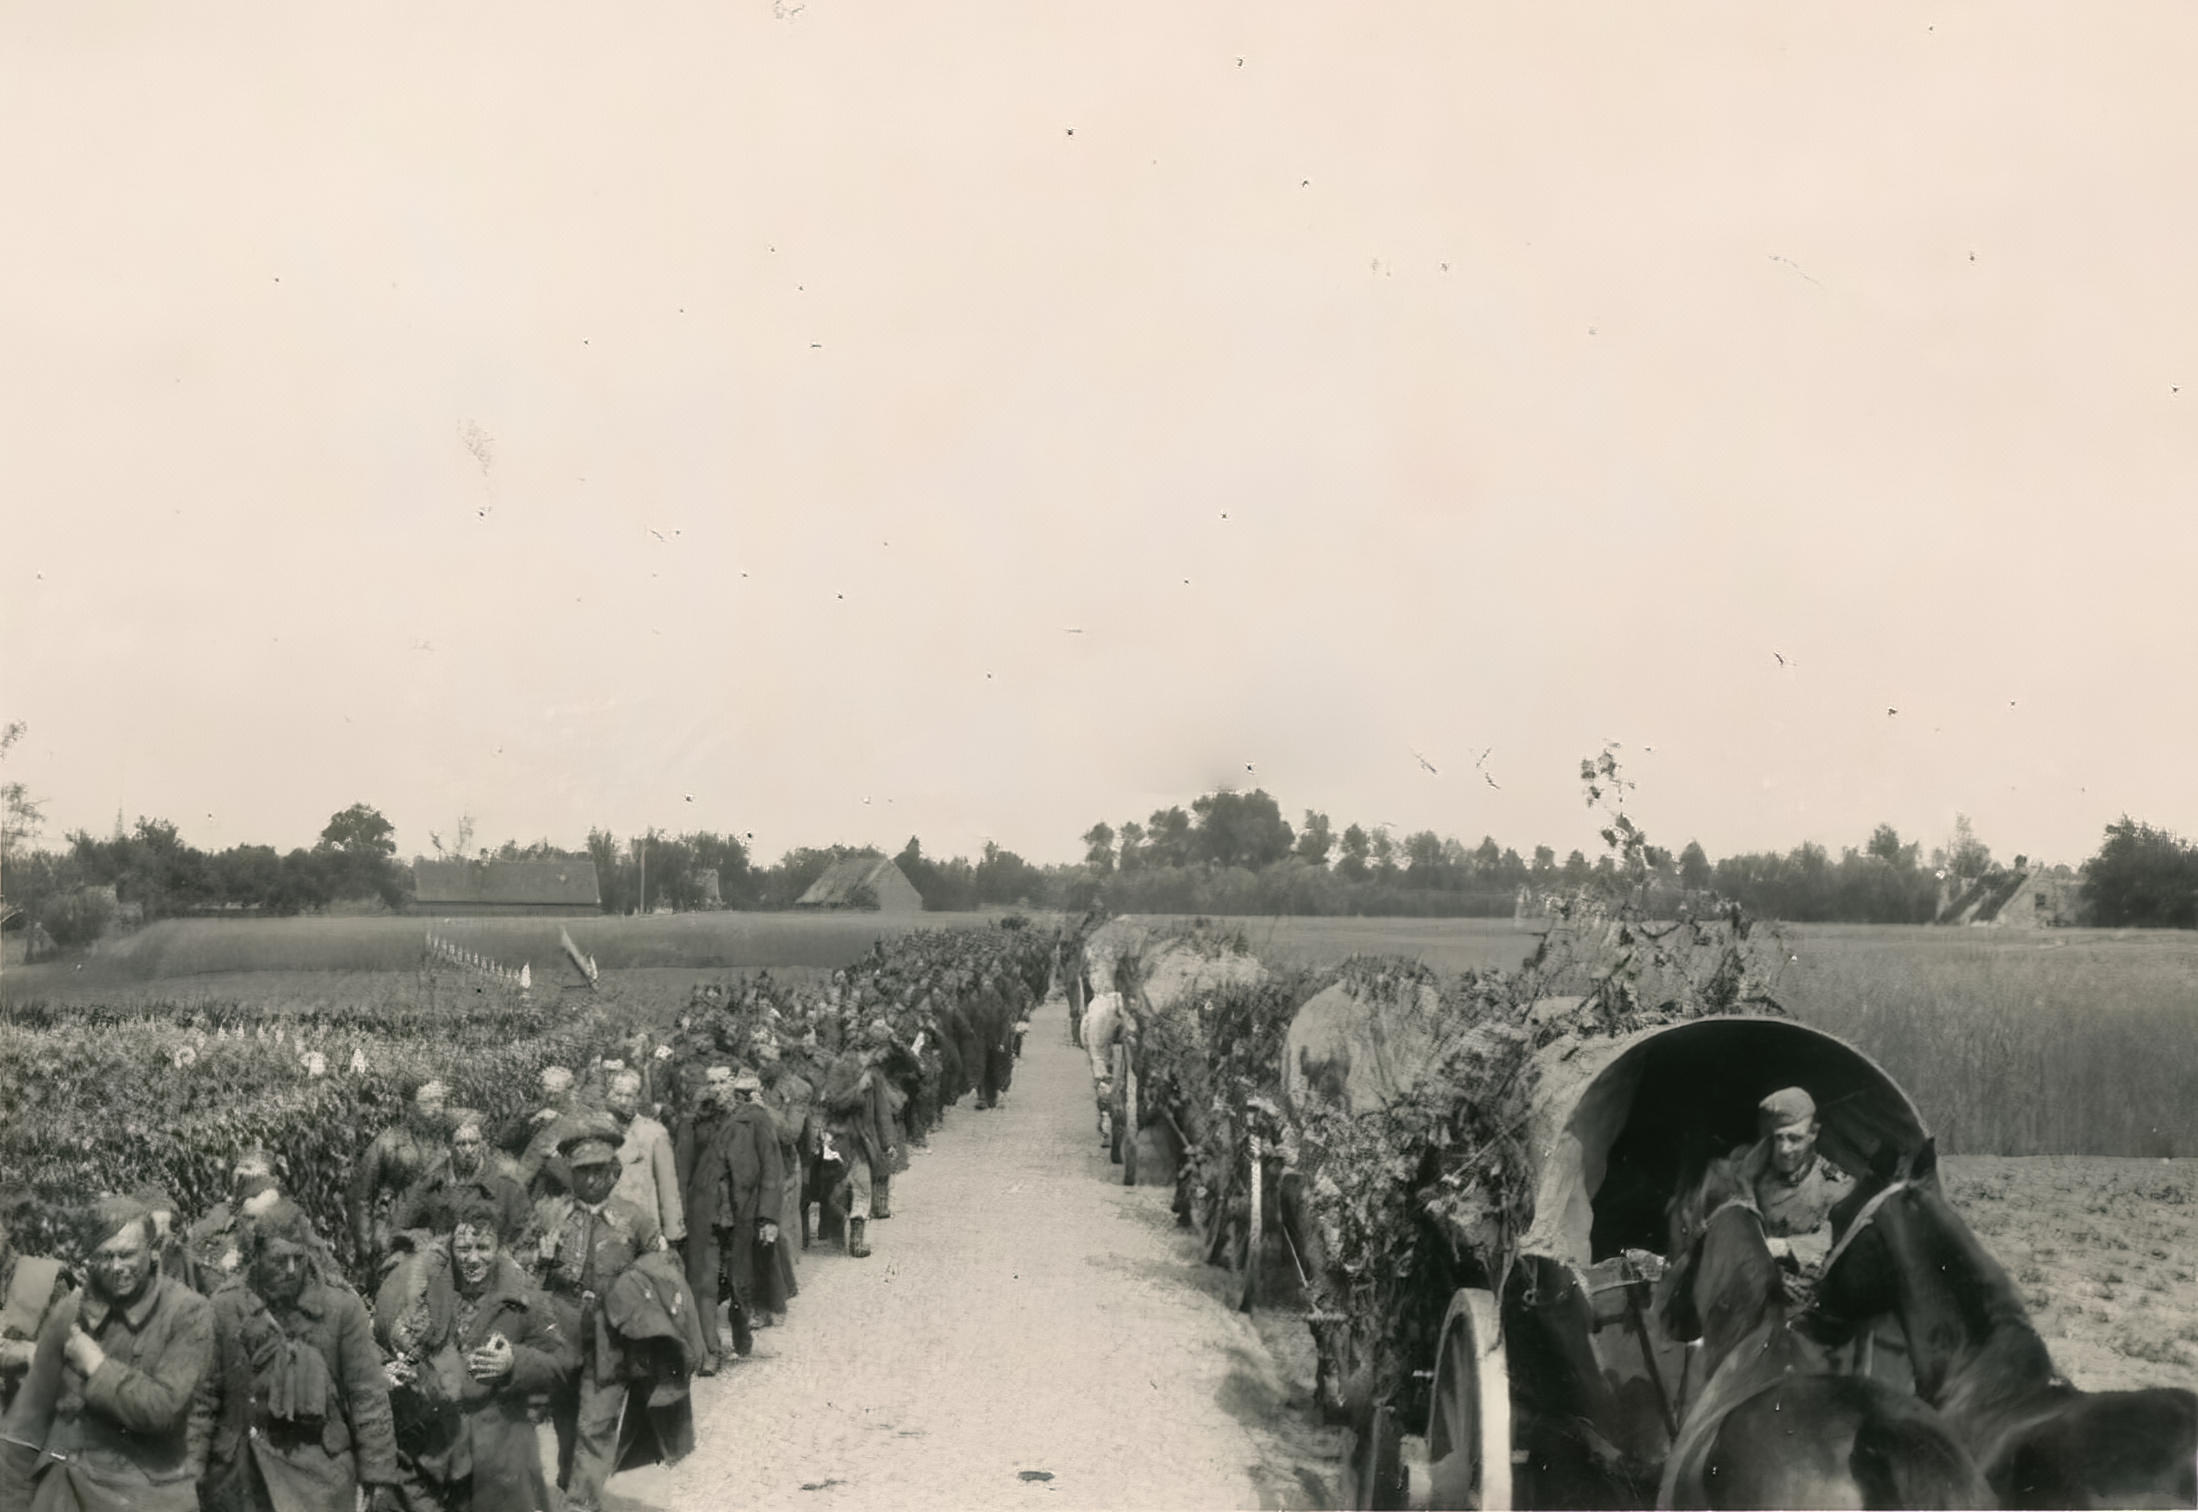 Column of French POWs being marched towards internment June 1940 ebay 01